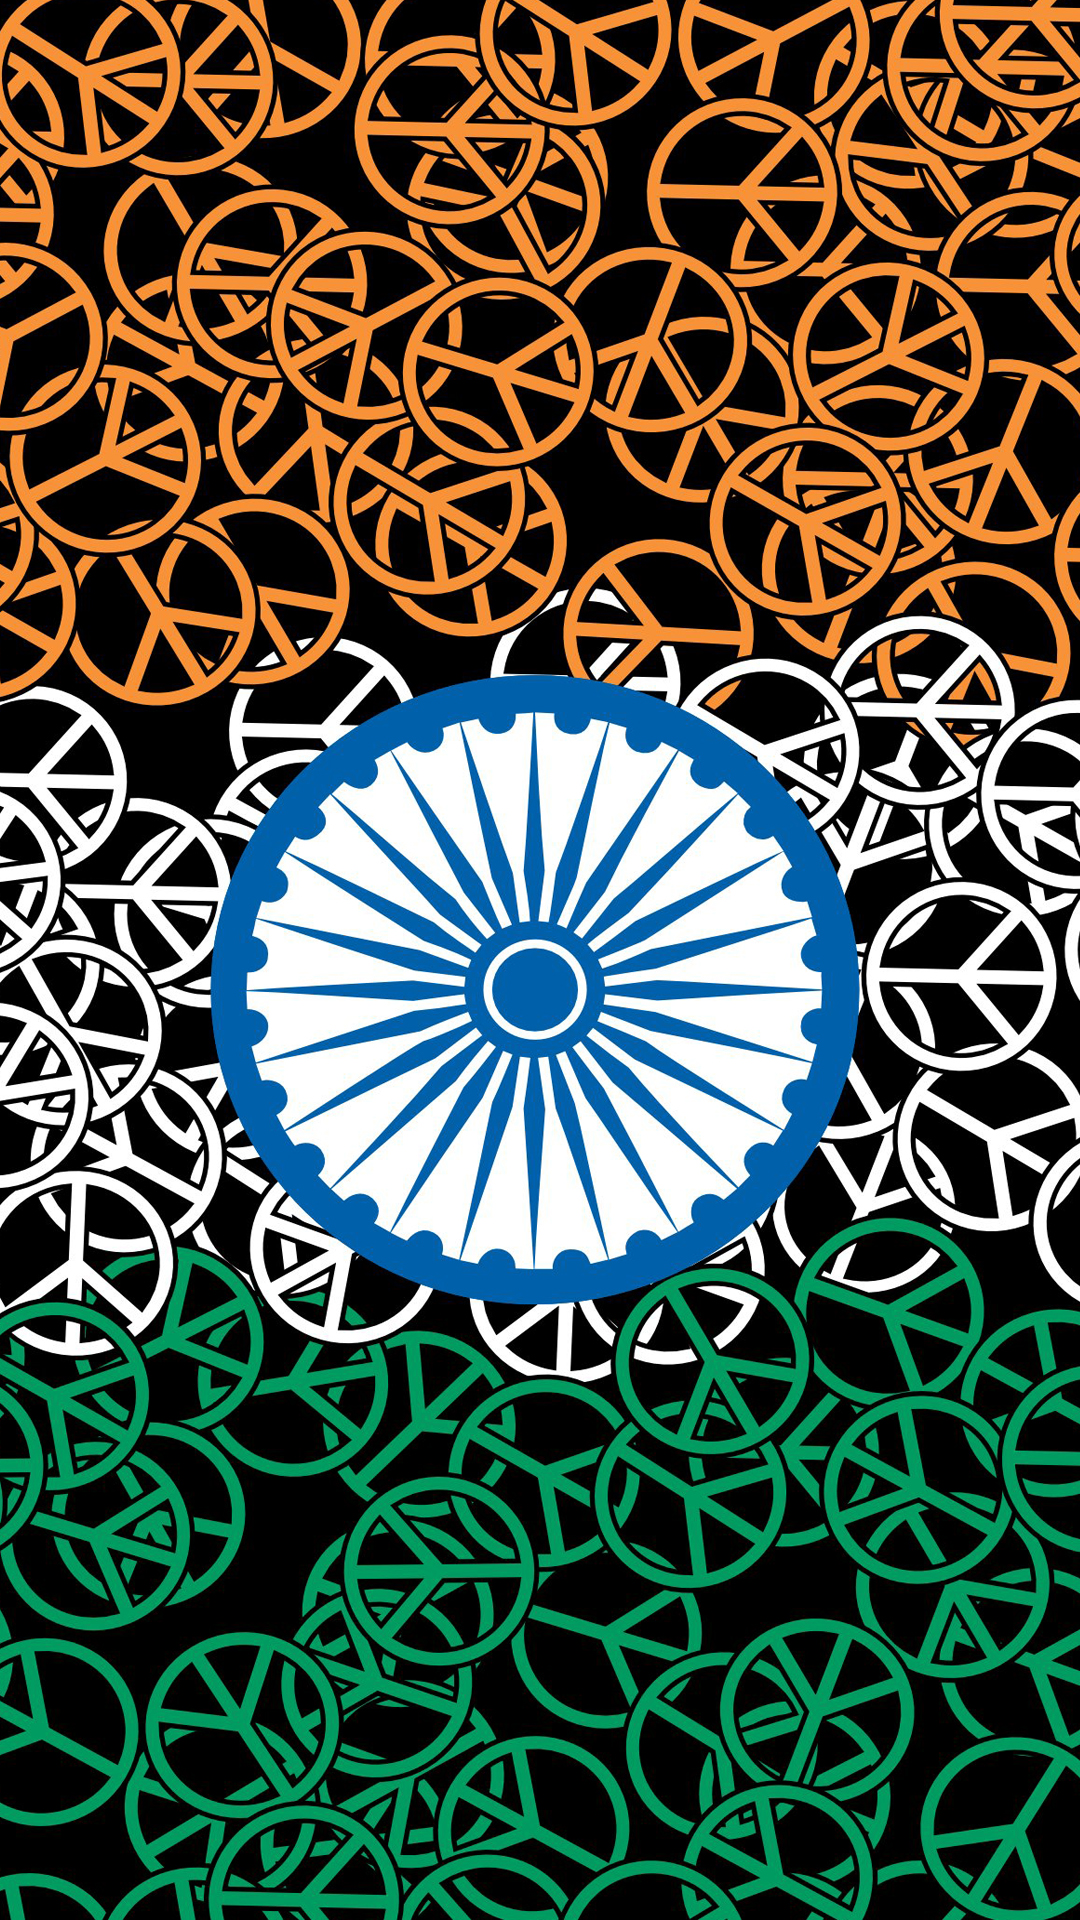 india flag for mobile phone wallpaper 01 of 17 pictures – tiranga